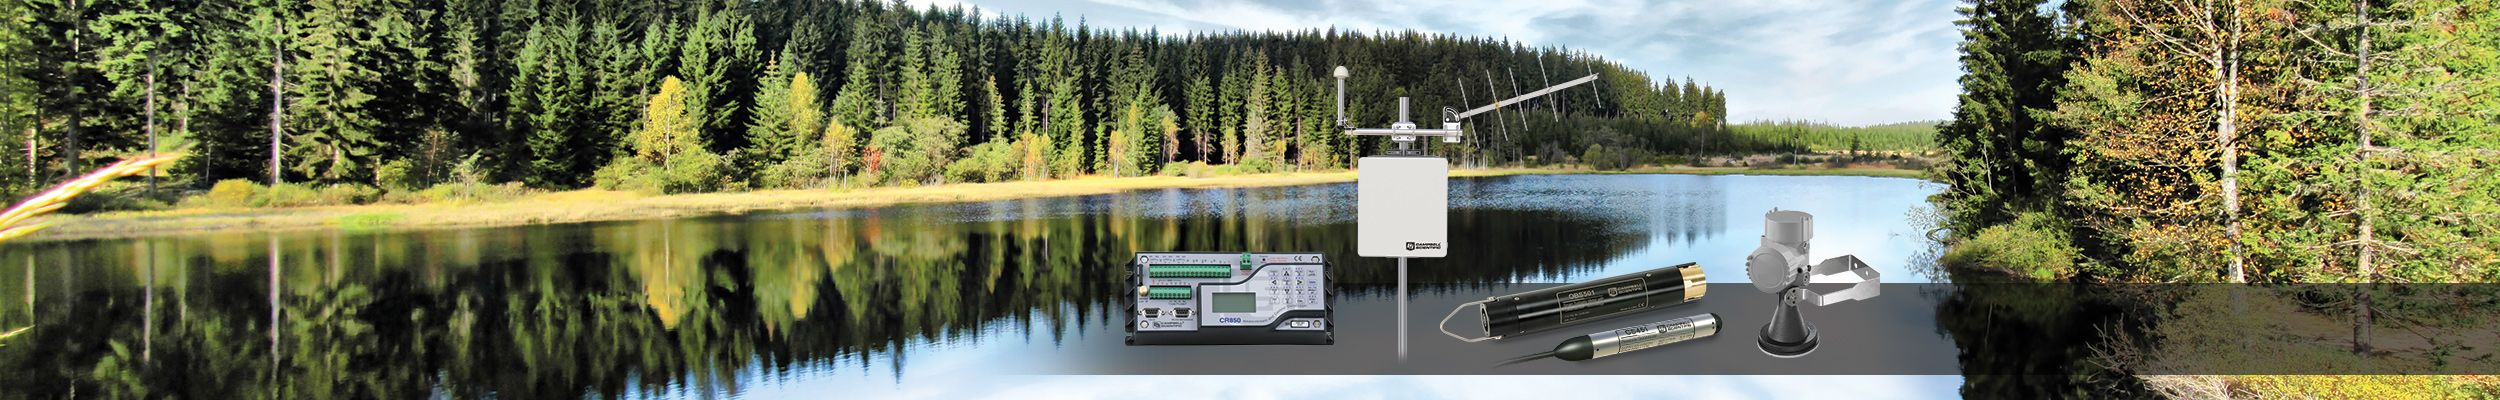 Water Measurement and control systems for water applications